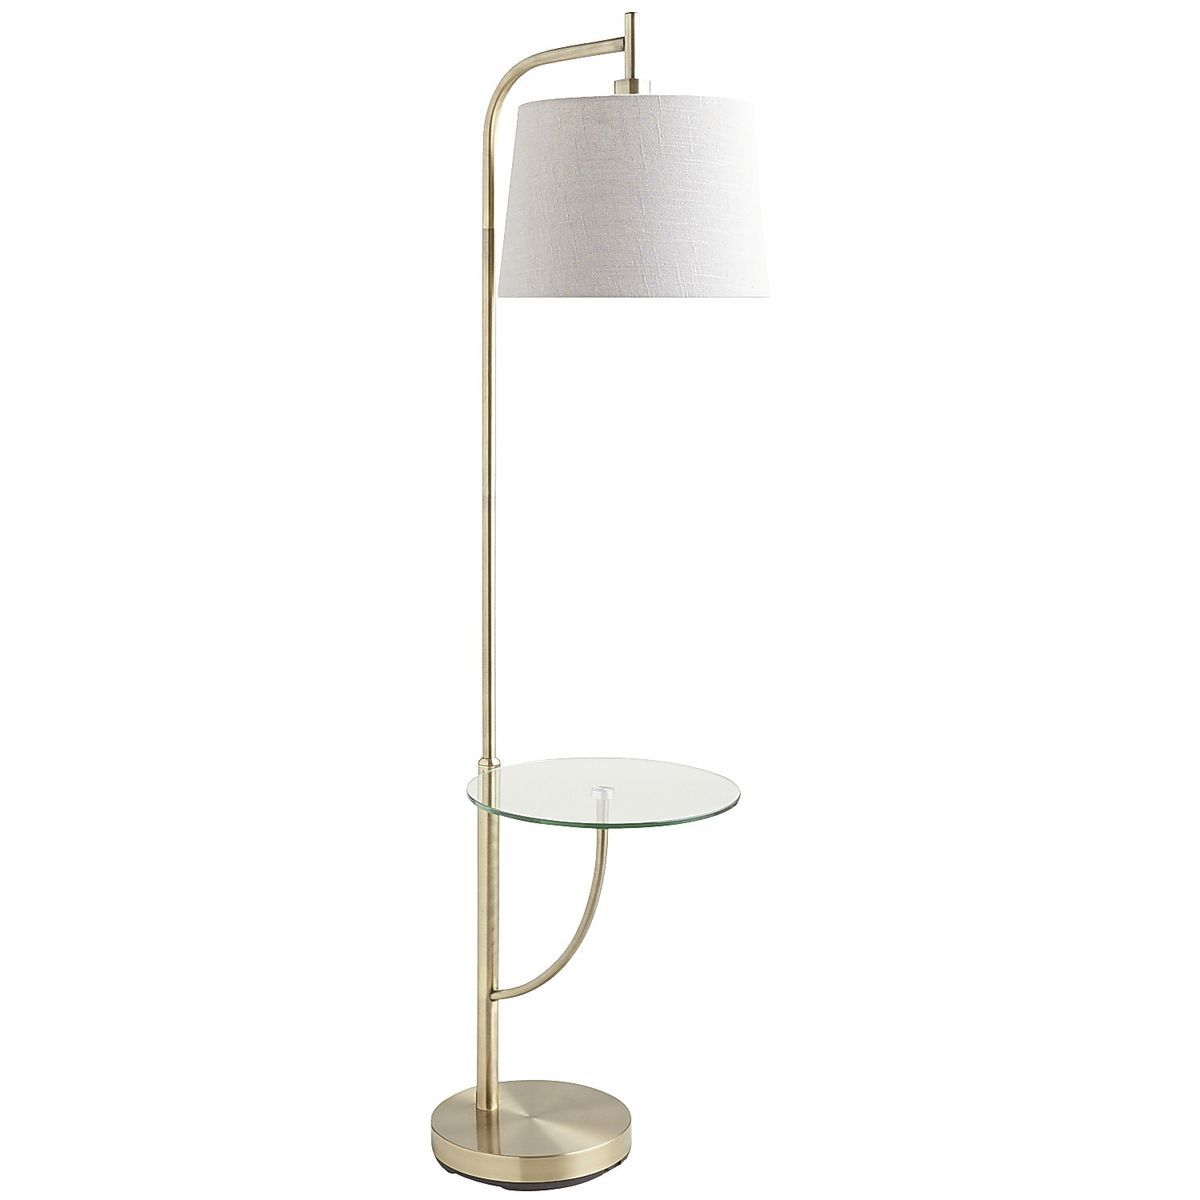 Pier 1 Imports Travis Tray Floor Lamp